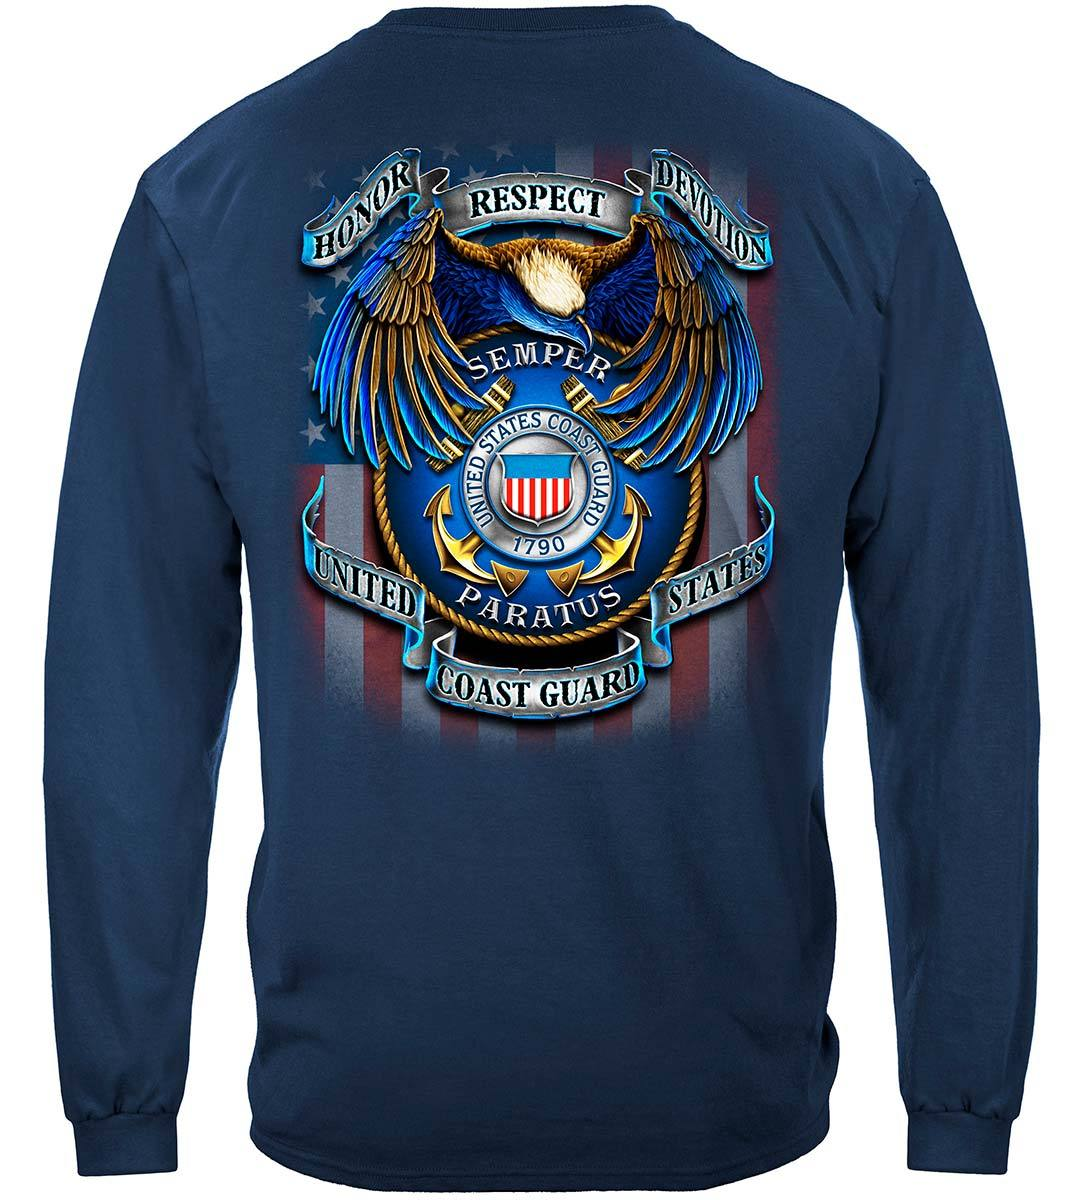 True Heroes Coast Guard Premium Long Sleeves